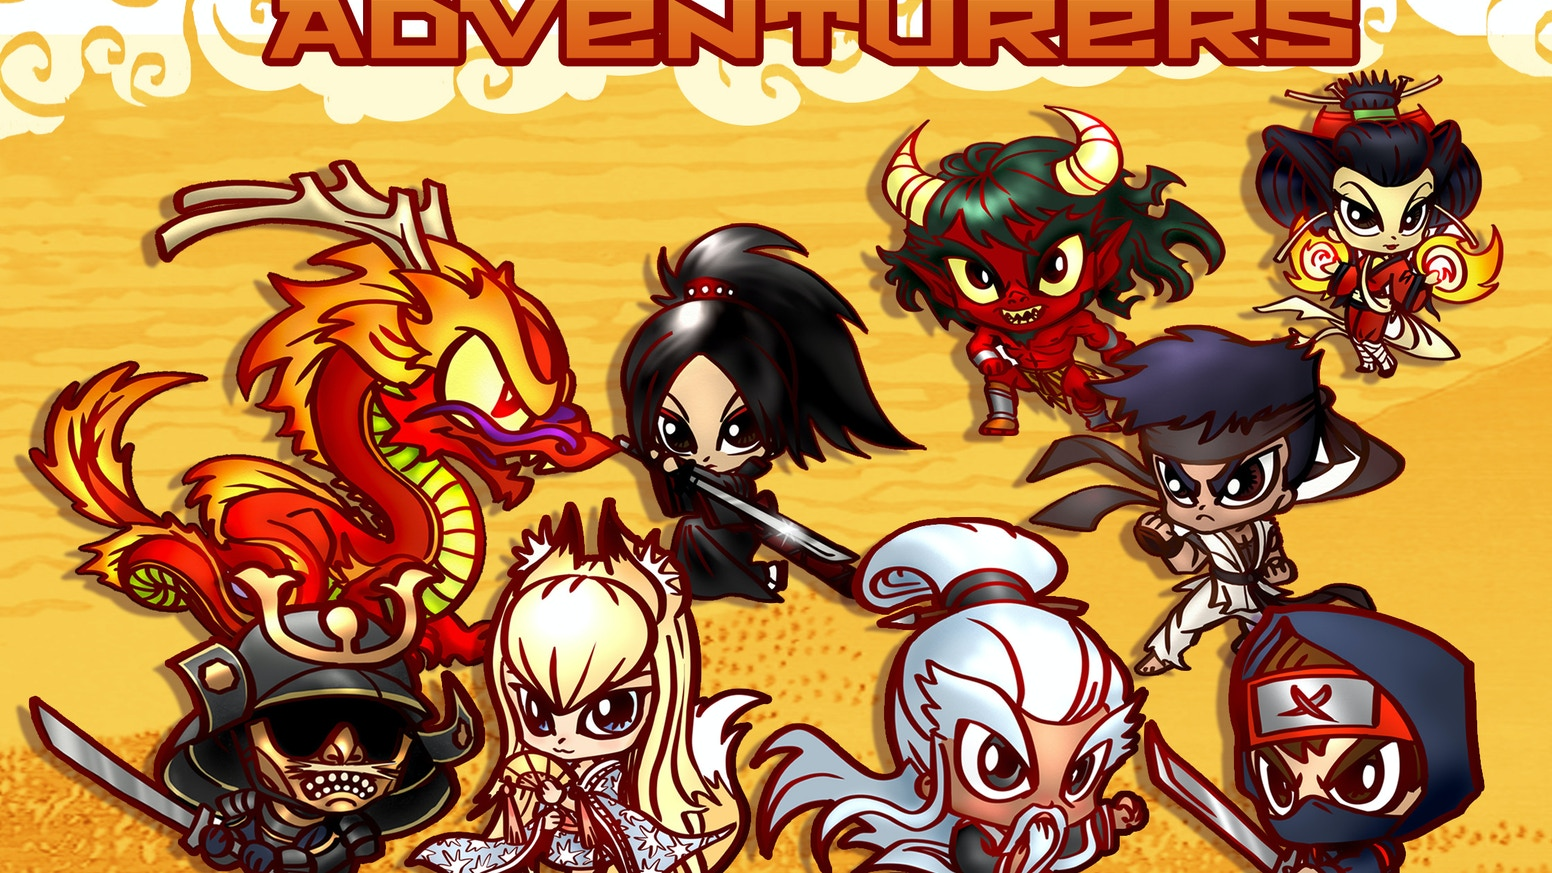 A miniatures line featuring Asian themed RPG heroes, villains and monsters in chibi anime style.